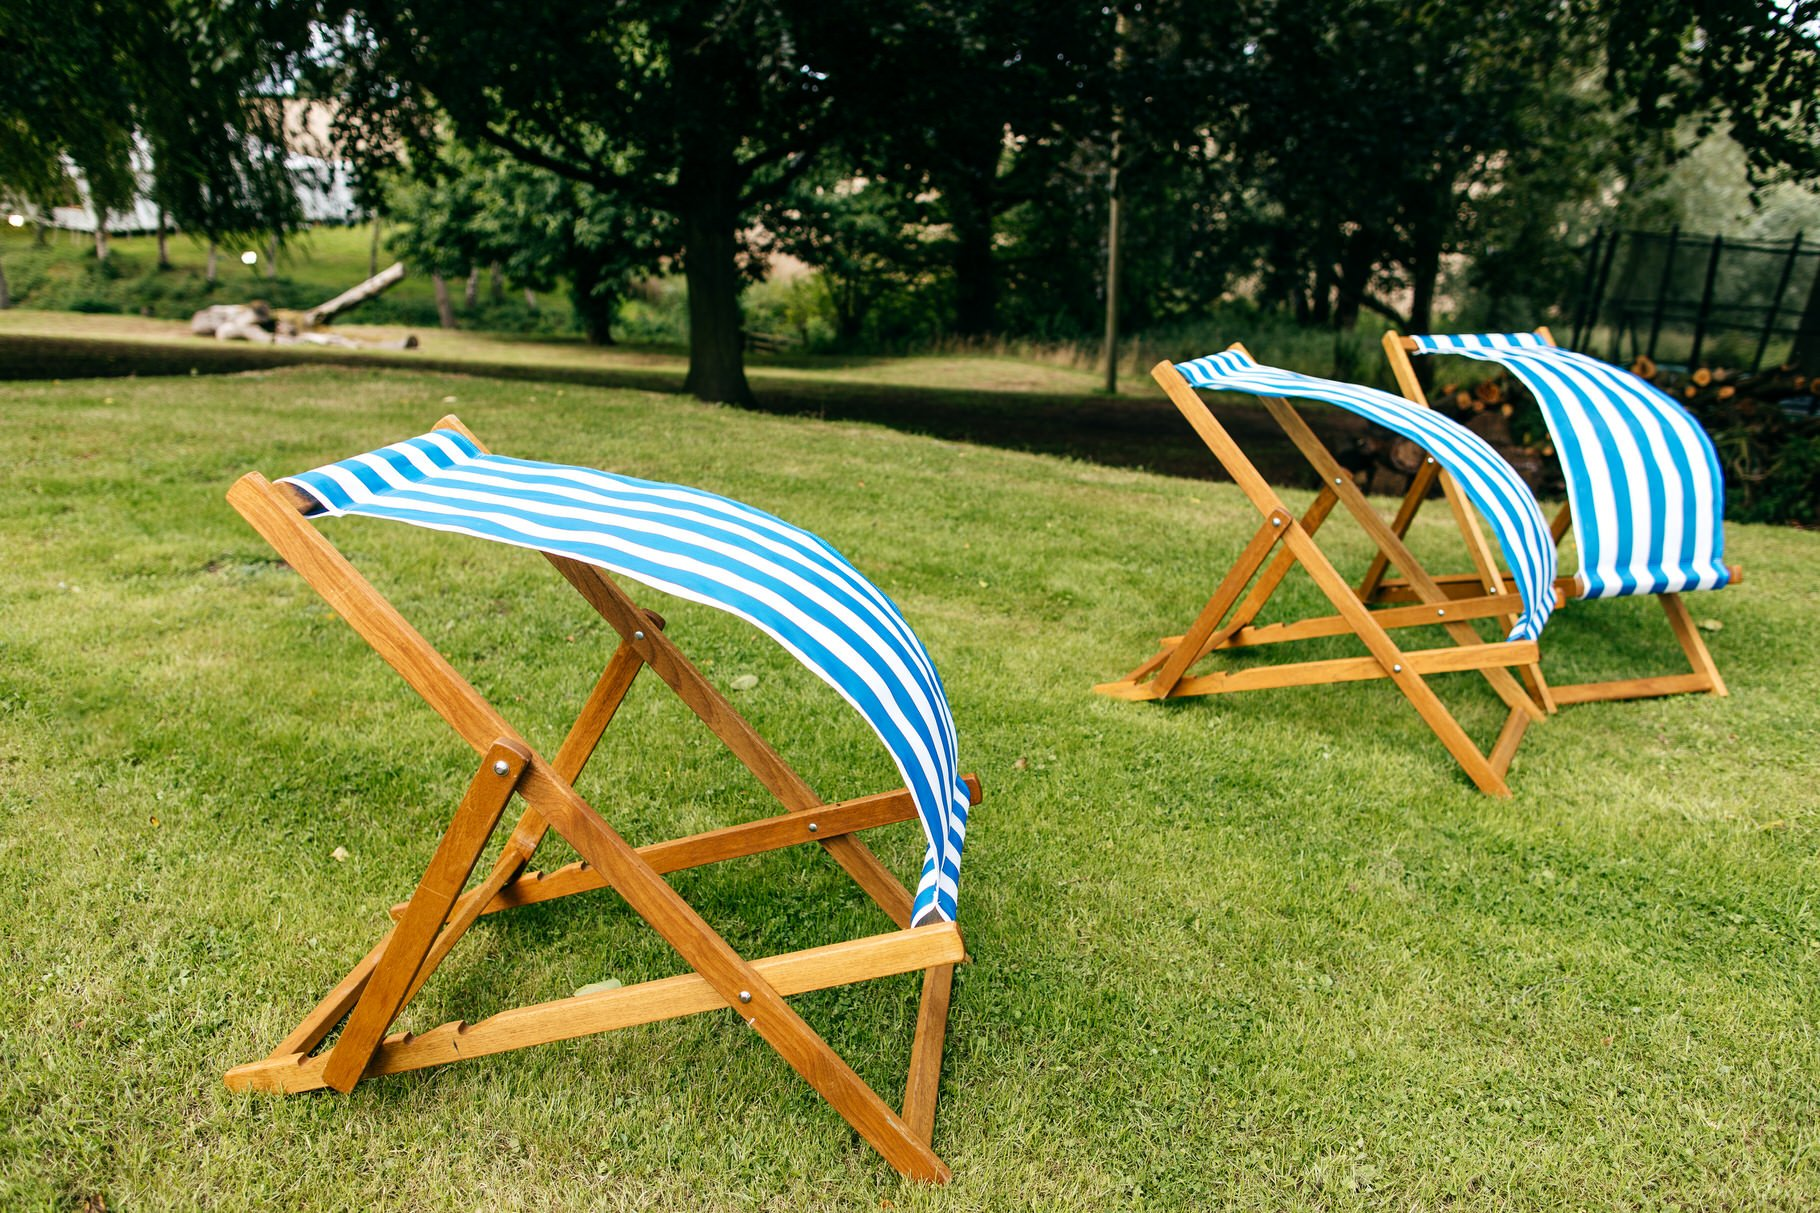 deckchairs blowing in the wind at wedding at home in Herefordshire